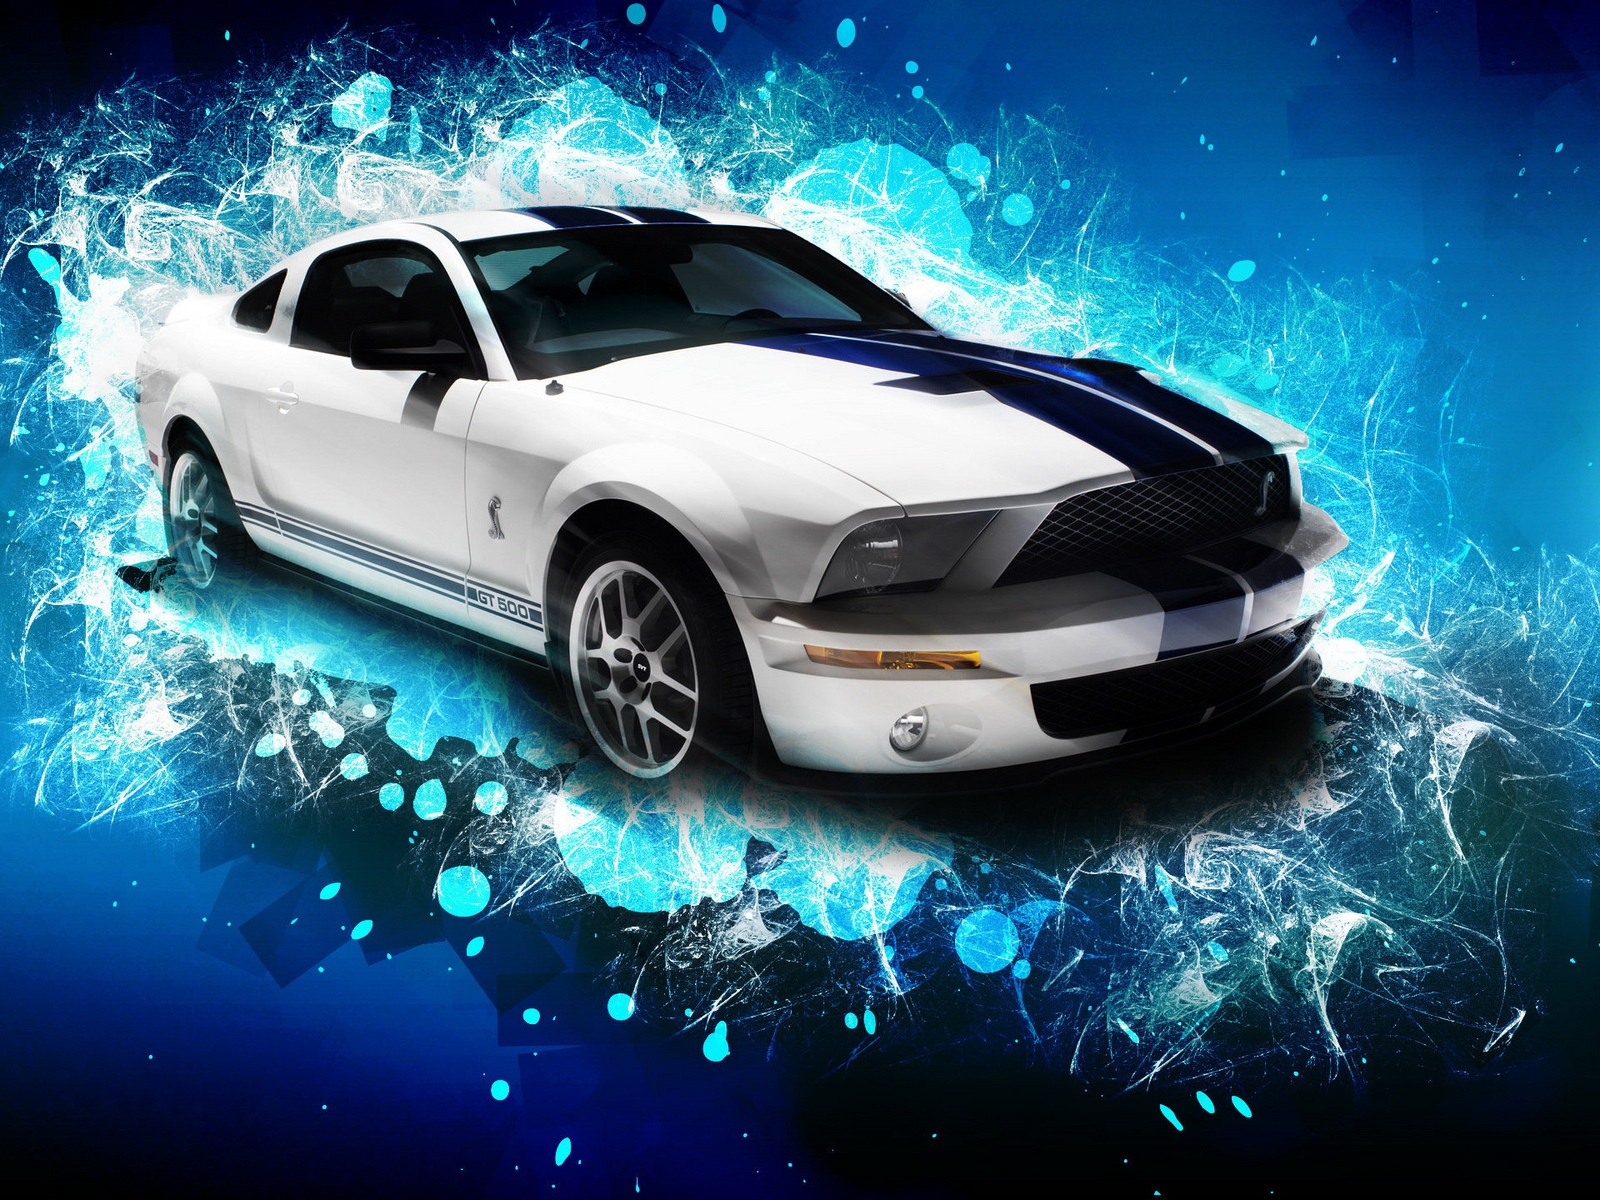 http://2.bp.blogspot.com/-_ejgwf2QPR4/UTwG-1fUtmI/AAAAAAAADXY/s1_CfbgSlzc/s1600/Top-desktop_hd_cars_wallpapers.jpg